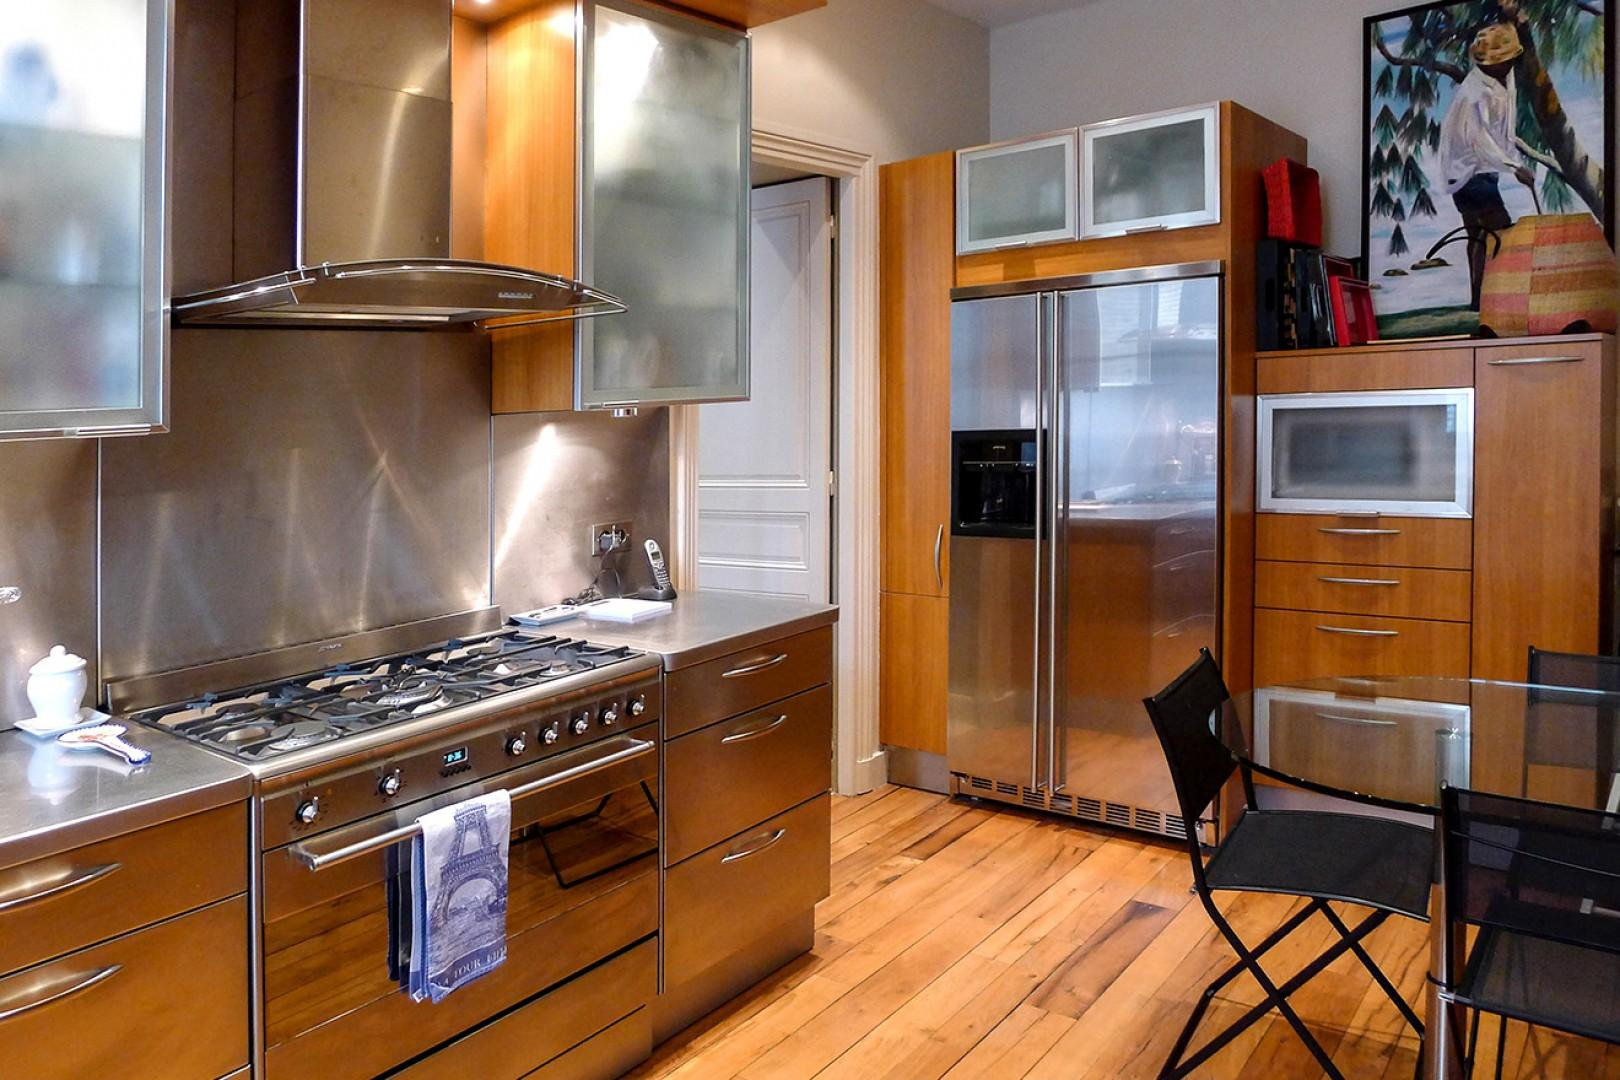 The functional kitchen features top-of-the-line appliances and easy access to the dining room.